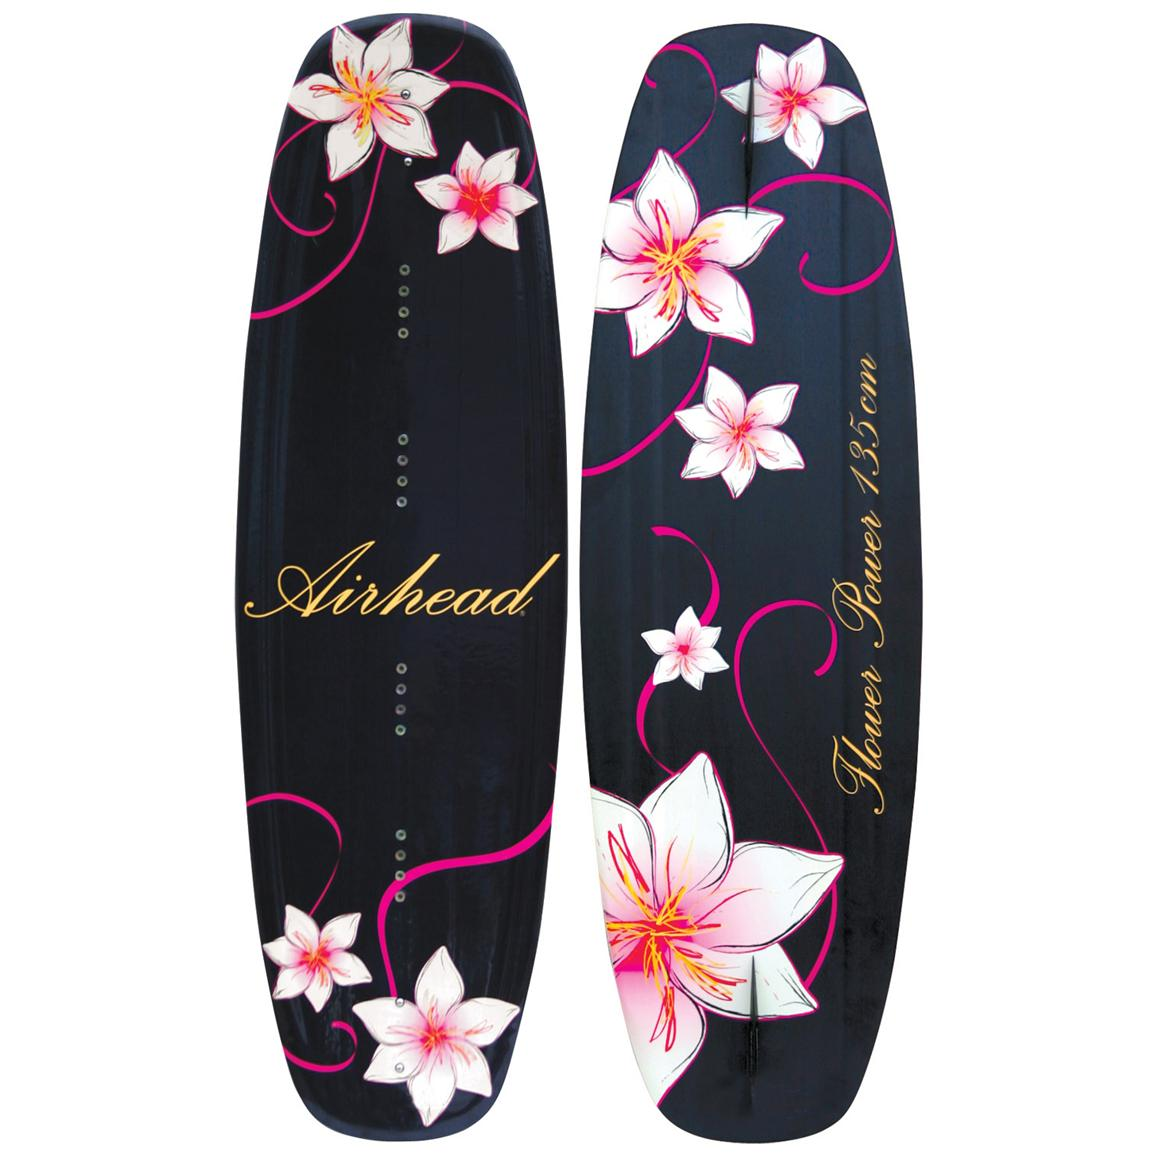 Airhead® Flower Power Wakeboard with Grind Binding